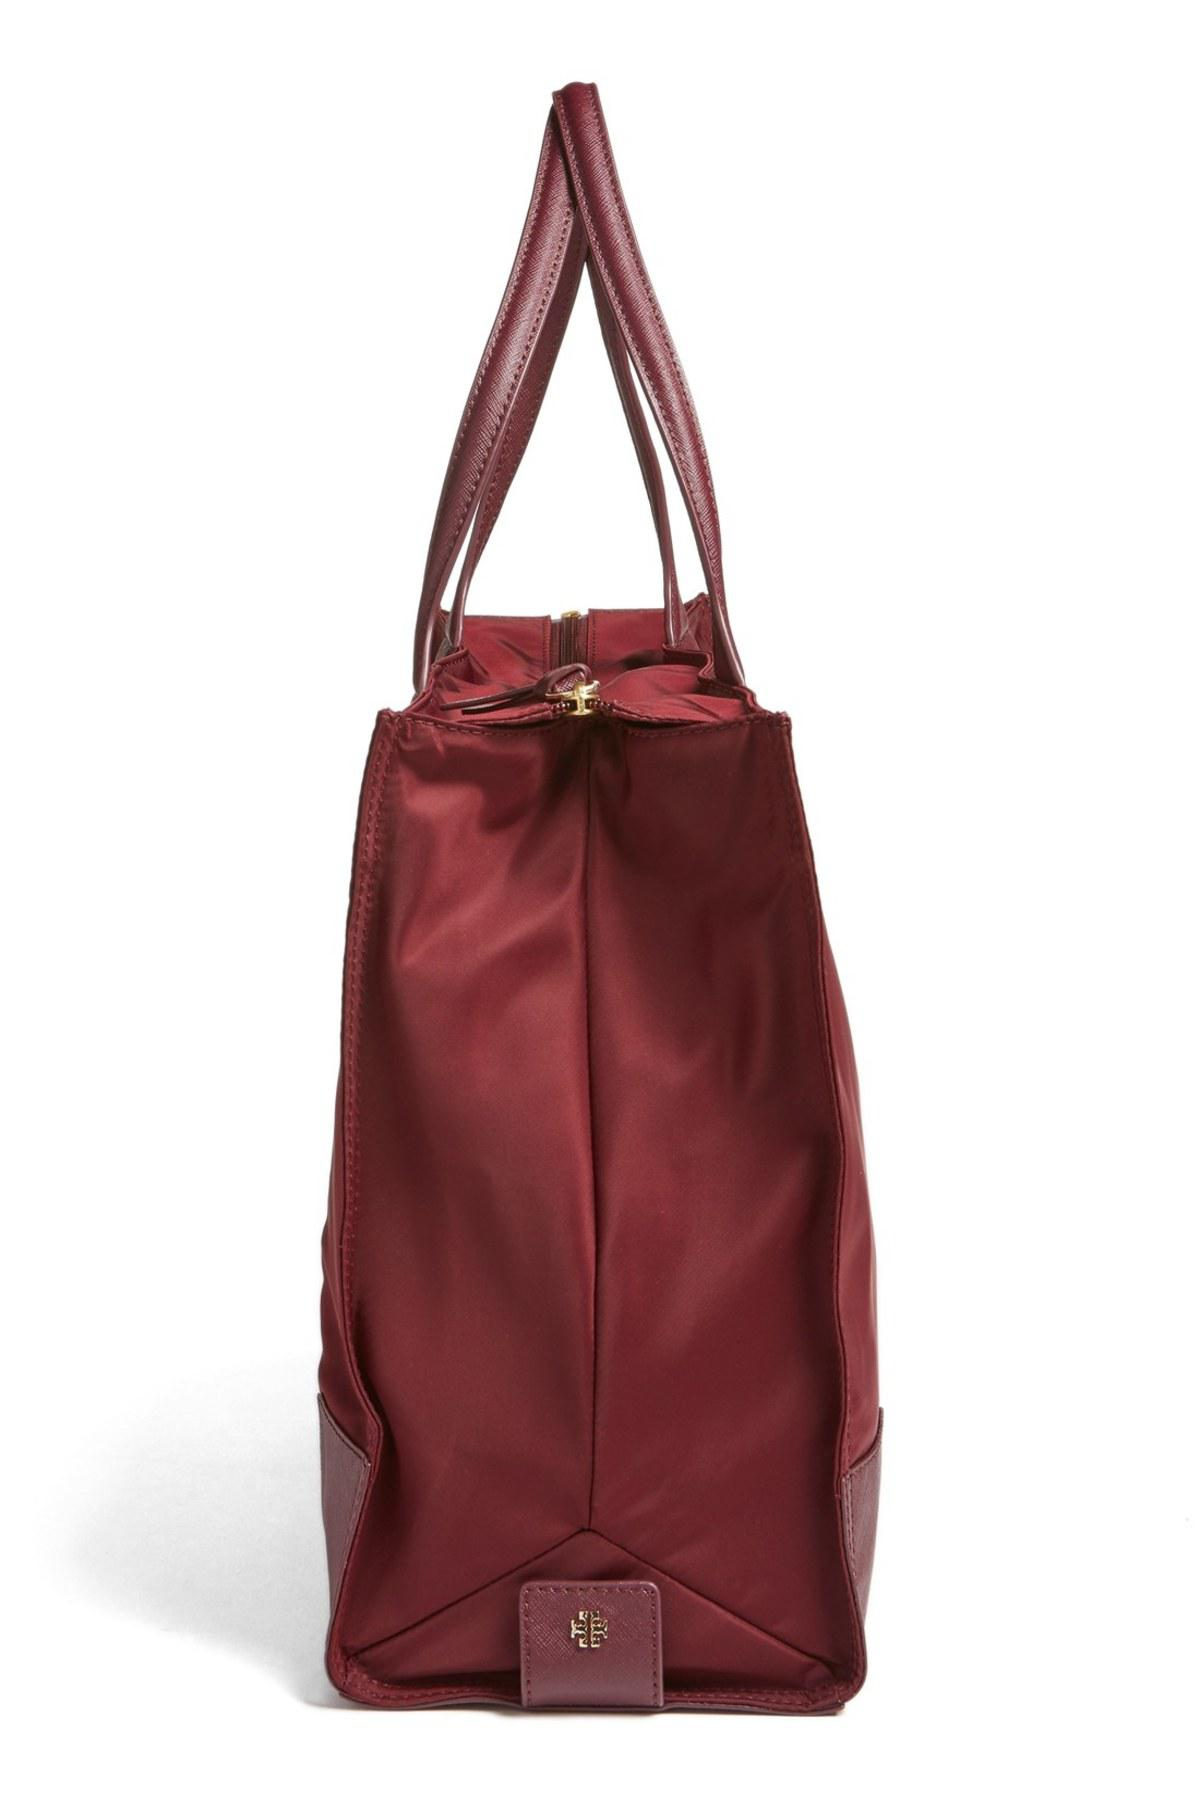 8bb90b120b341 Lyst - Tory Burch  ella  Packable Nylon Tote - Burgundy in Red